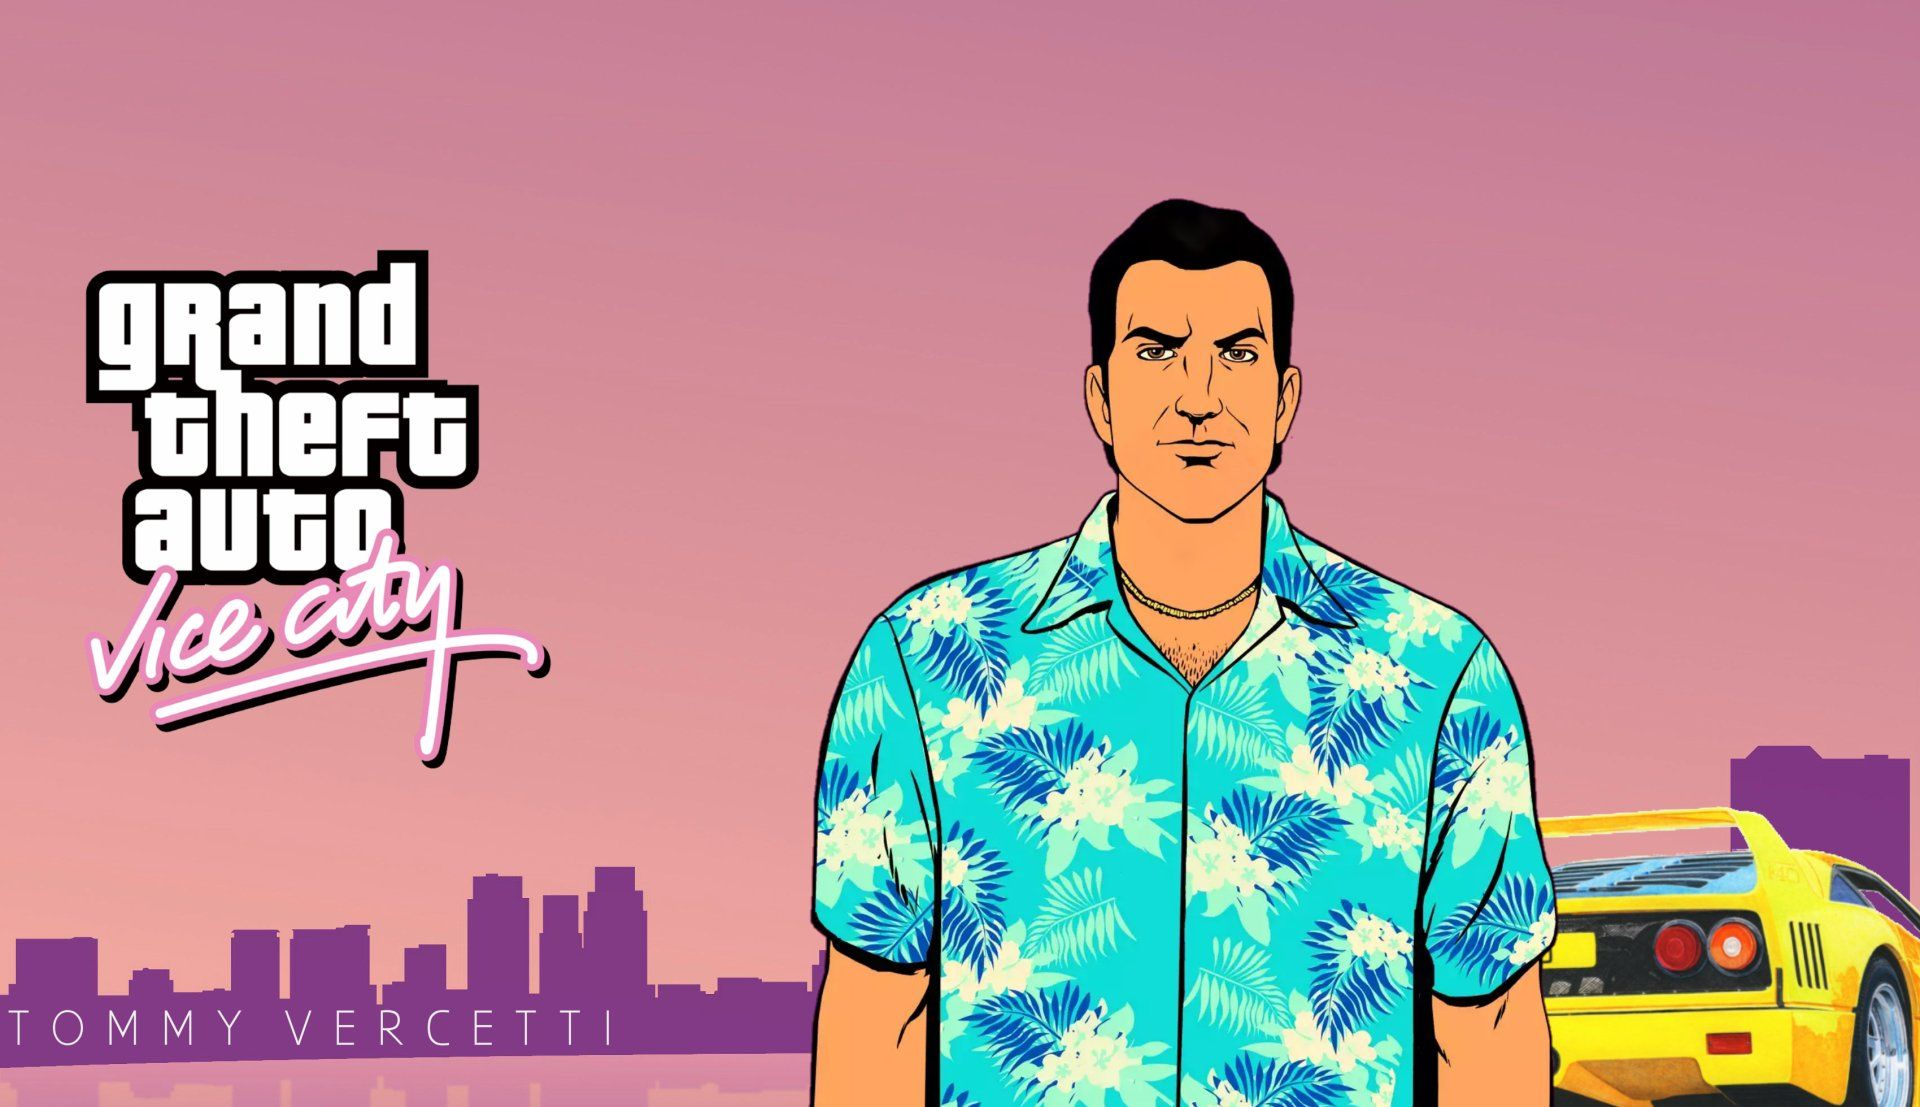 3399x1959 Grand Theft Auto Vice City Wallpaper Background Image View Download Comment And Rate Wallpaper Abyss Grand Theft Auto Vice City Wallpaper